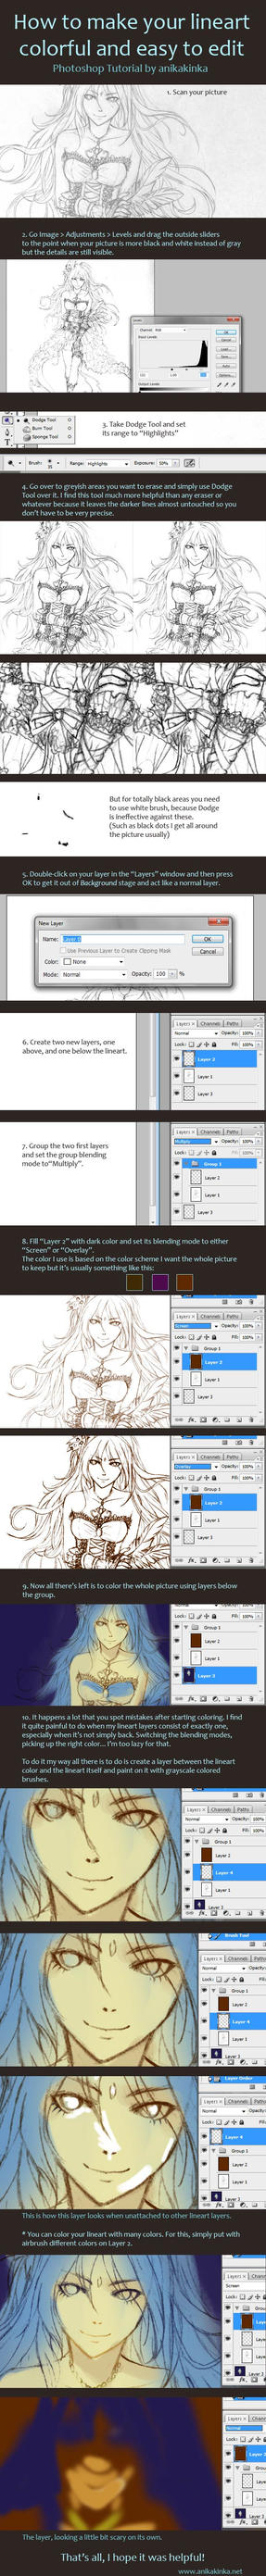 Color Lineart Tutorial by anikakinka